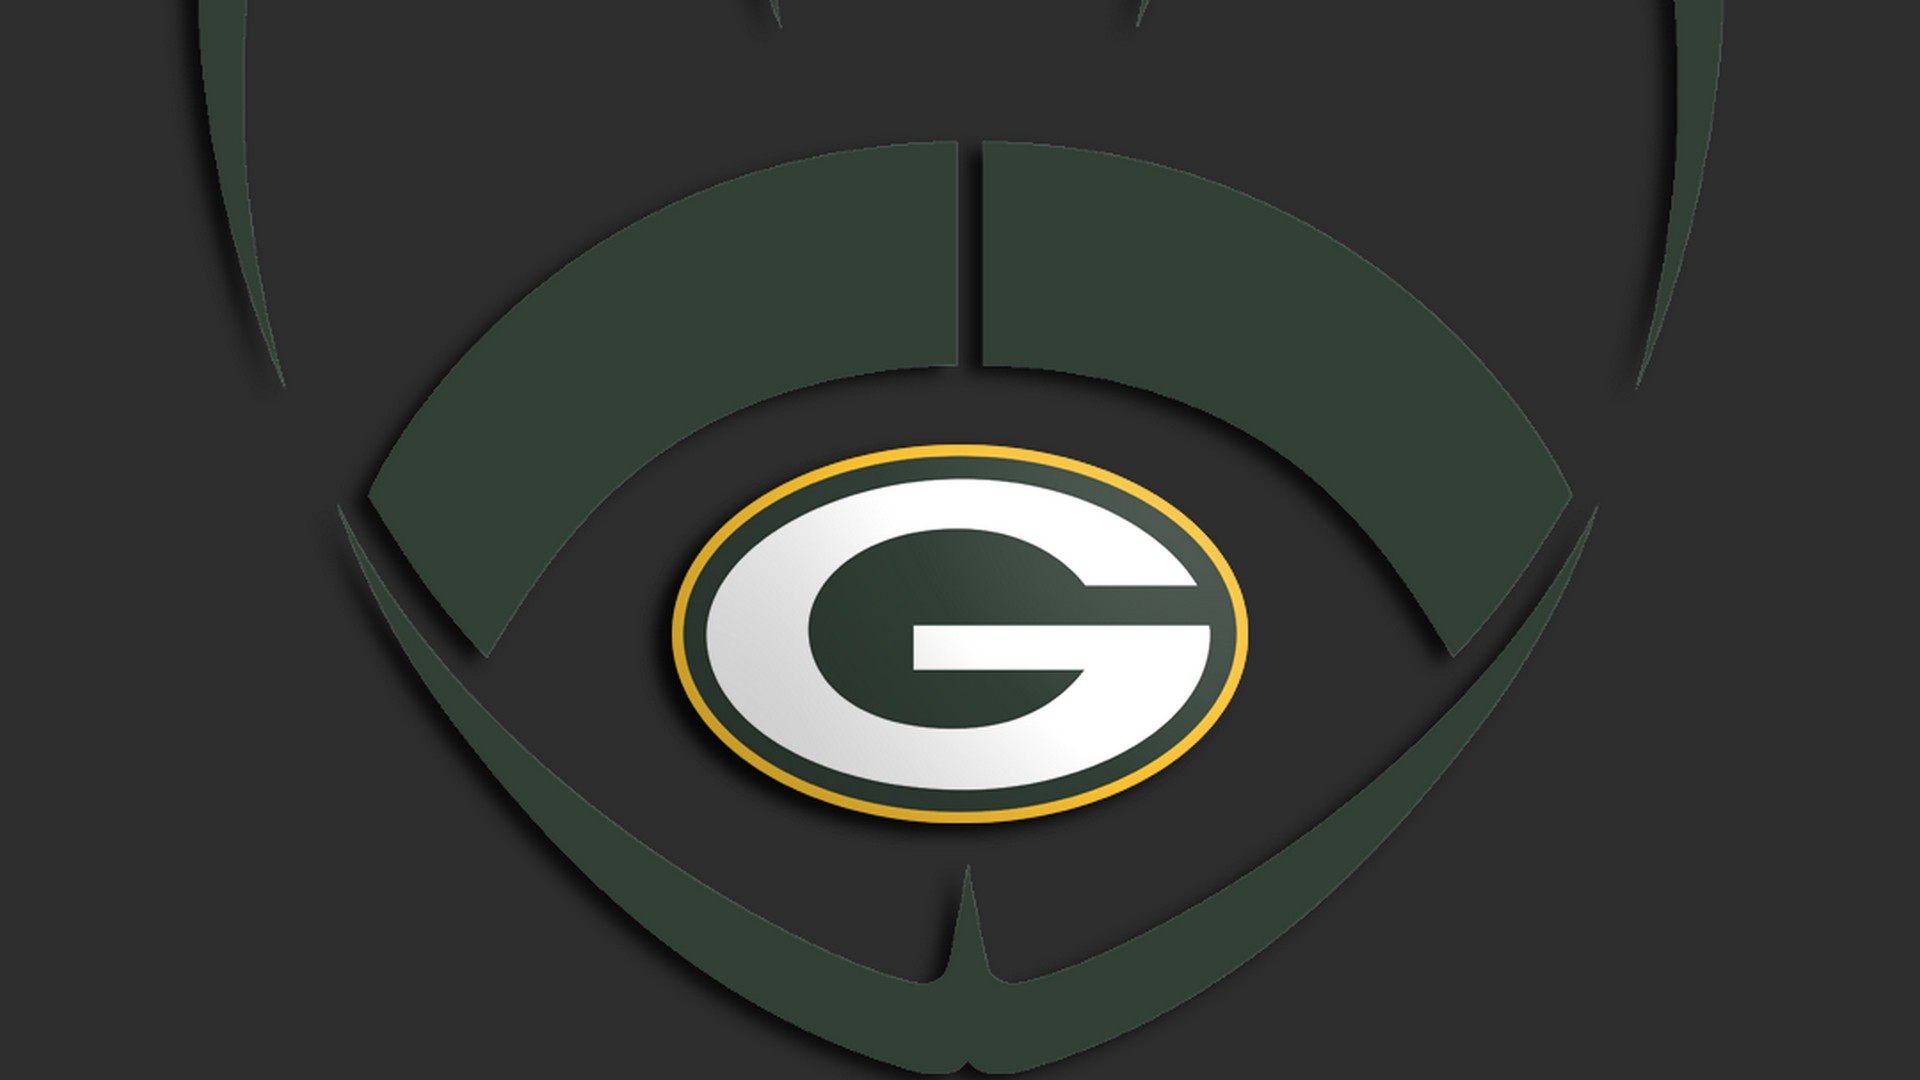 Packers Schedule Wallpaper Posted By Ethan Johnson